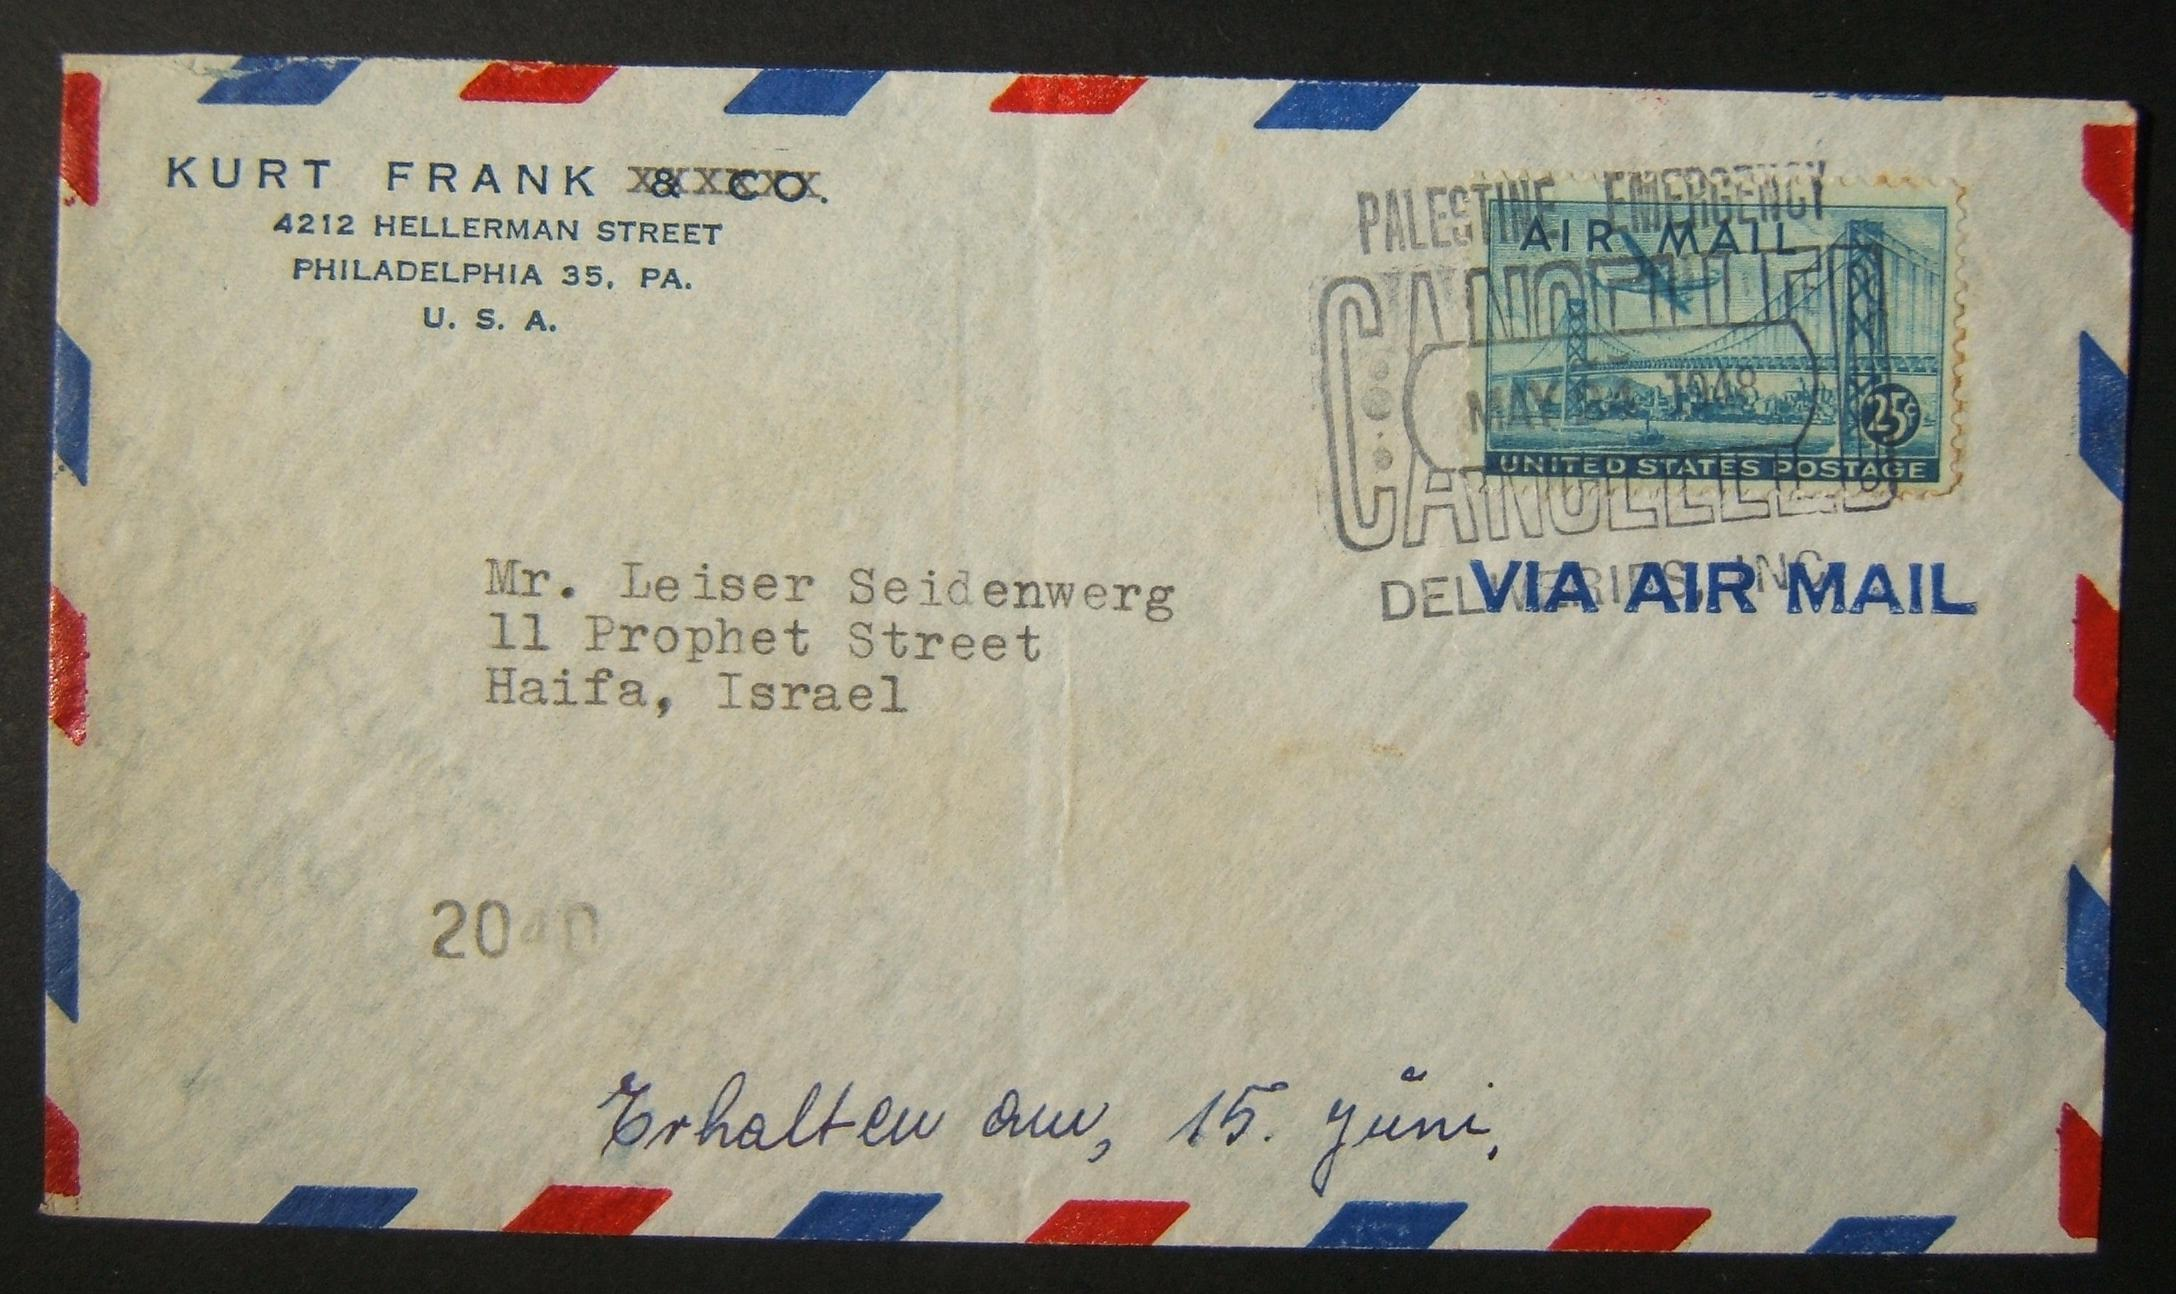 1948 PEDI [2nd day] mail: comm. cv ex PHILADELPHIA to HAIFA franked 25c at airmail rate to Israel tied by full strike of MAY 24 1948 pmk (2nd day of PEDI service) and numbered